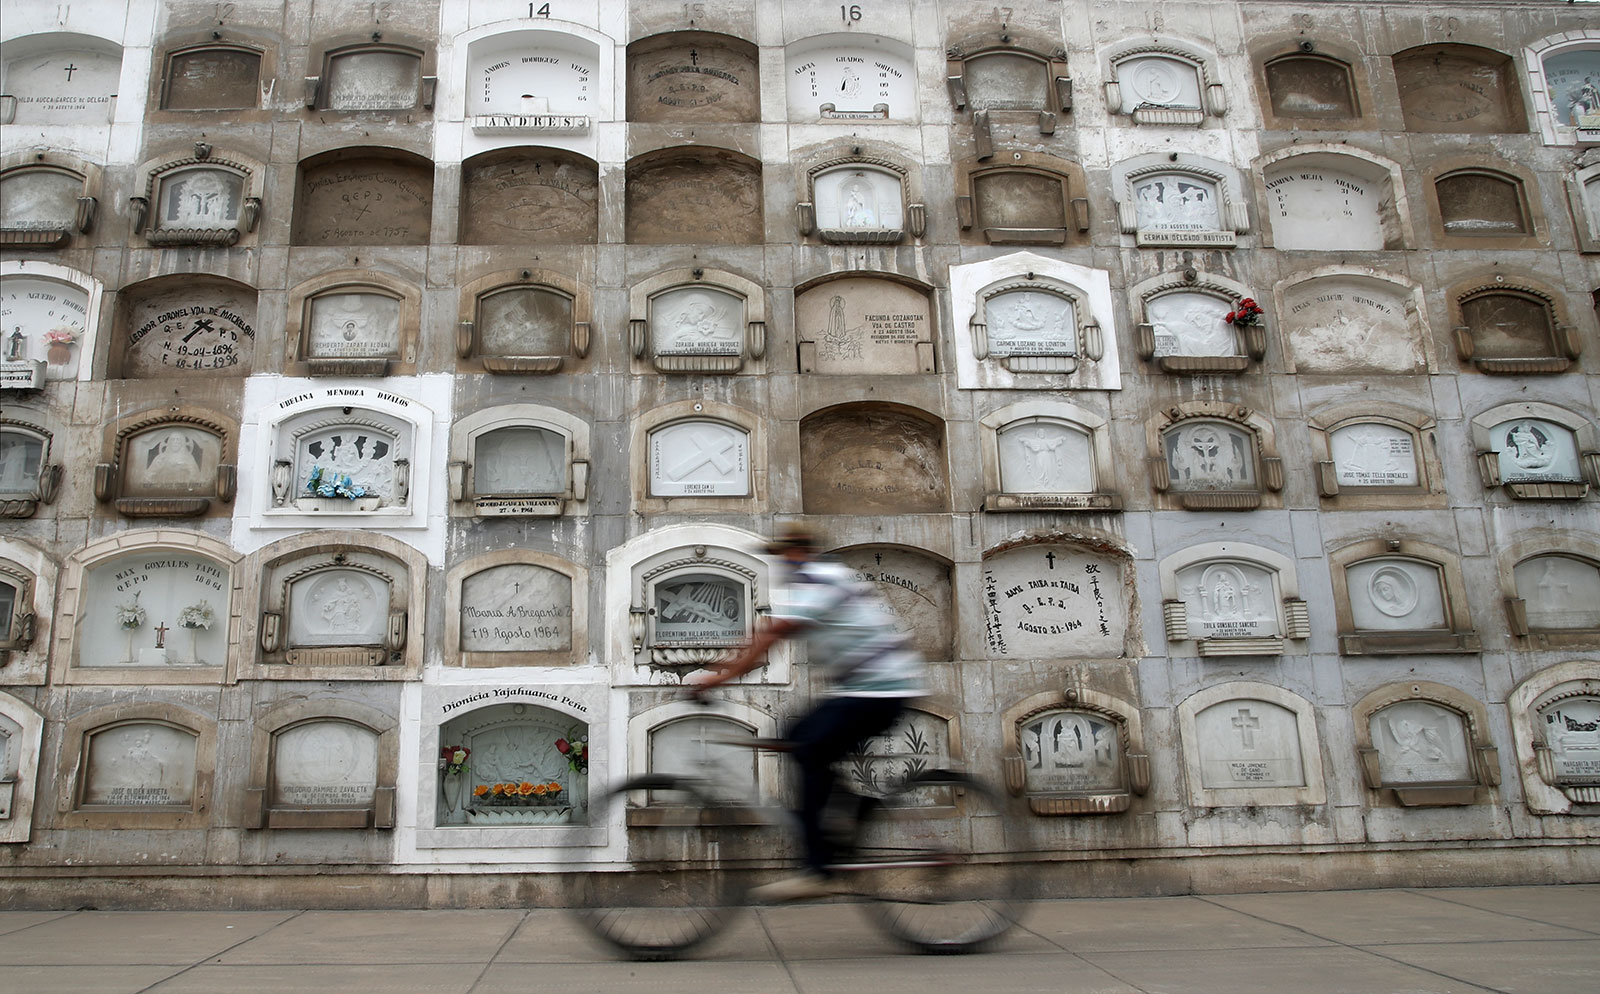 A cemetery worker rides a bicycle to put flowers on the graves at El Angel cemetery on June 4, 2020 in Lima, Peru. Peru has the second-highest number of cases of Covid-19 in Latin America, after Brazil.